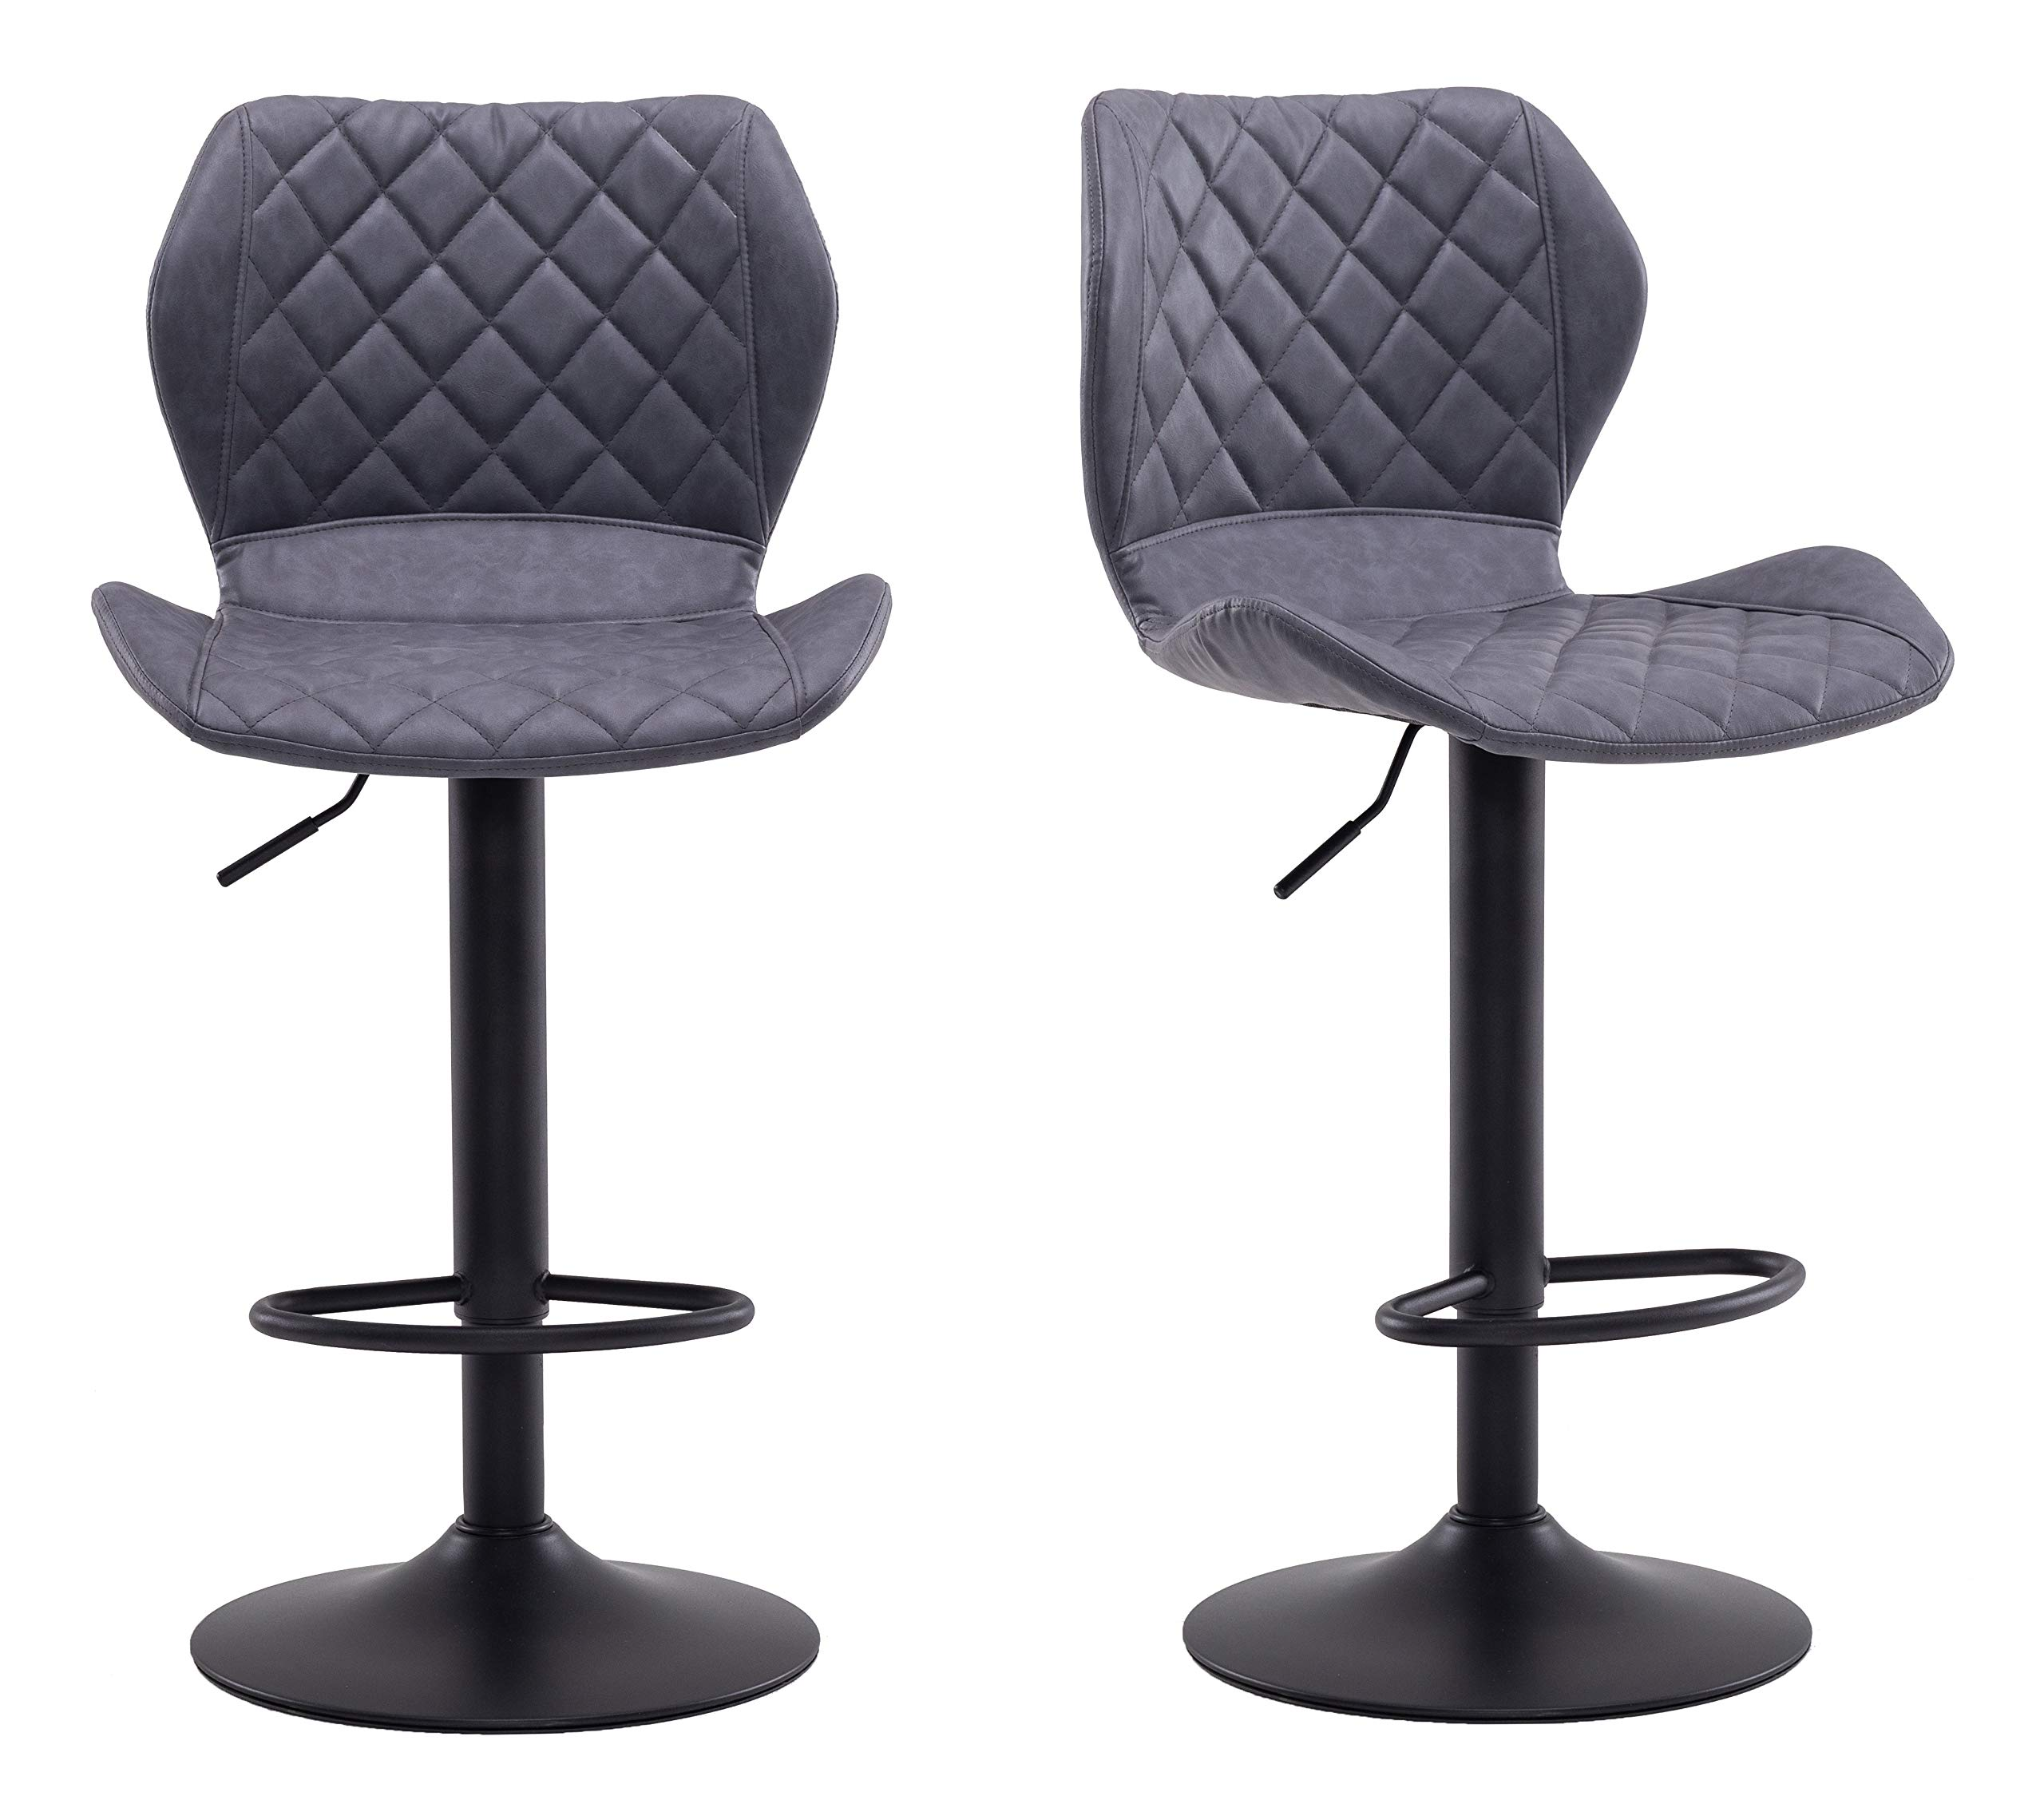 Requena Vintage Bar Stools Set Leathere Buy Online In Colombia At Desertcart